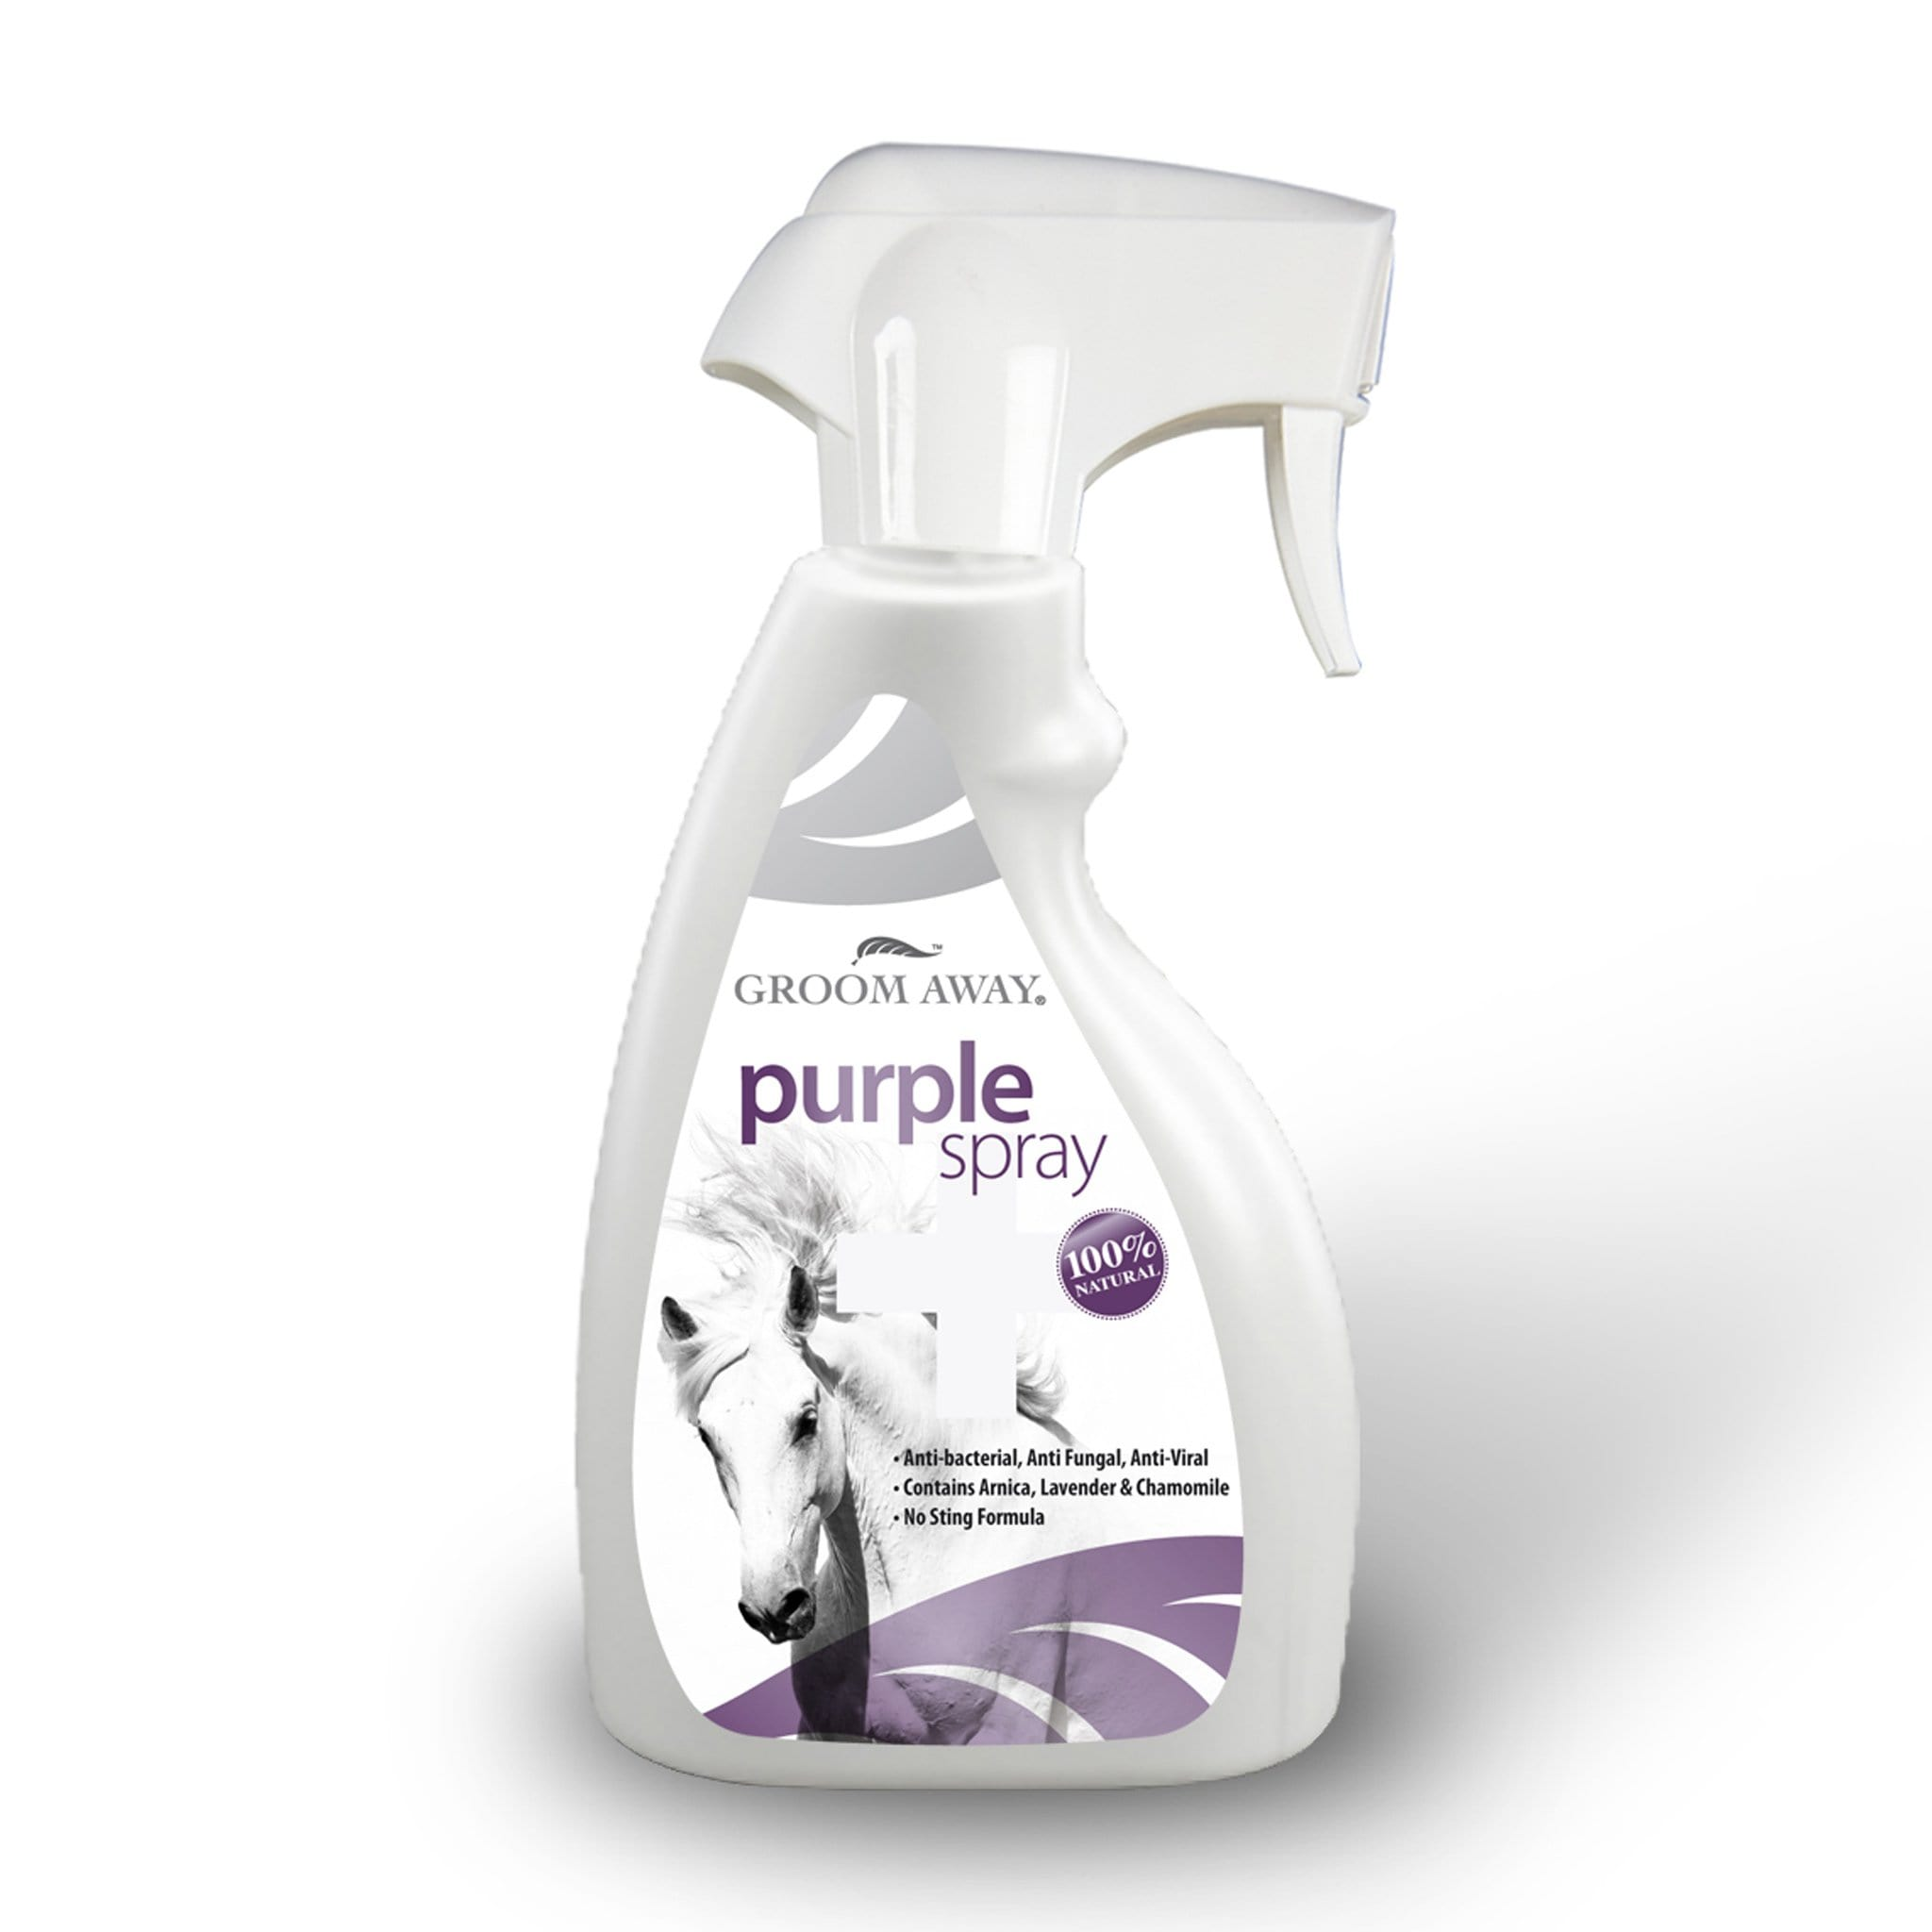 Groom Away Purple Spray 15502